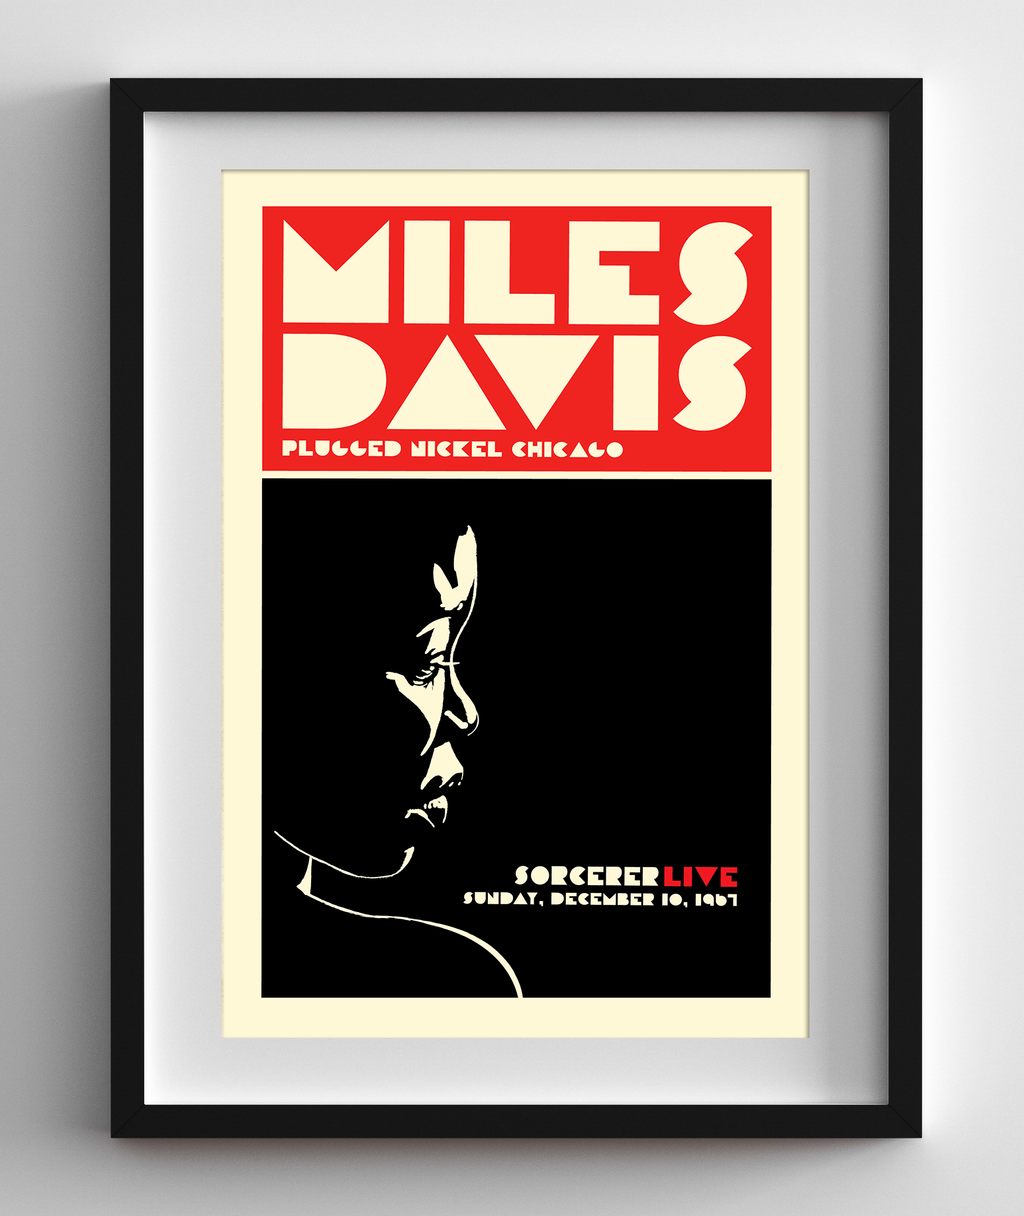 Miles Davis Live at the Plugged Nickel Chicago, 1967 Concert Print